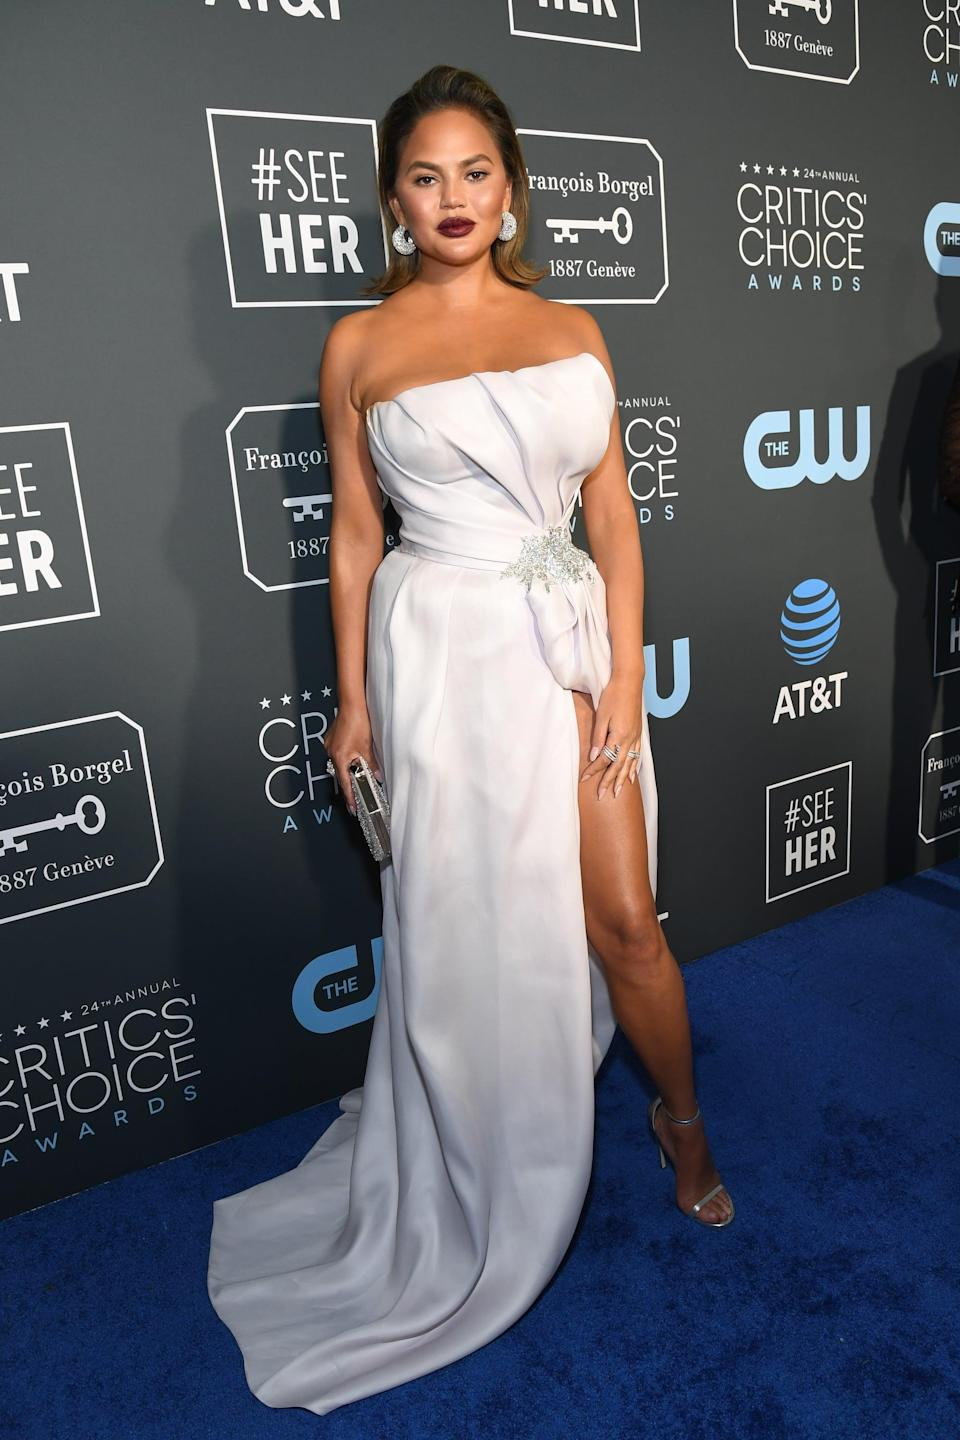 <p>Chrissy Teigen wearing a strapless white gown with a thigh-high slit by Maison Yeya, Jaipur Gems, and Stuart Weitzman heels.</p>